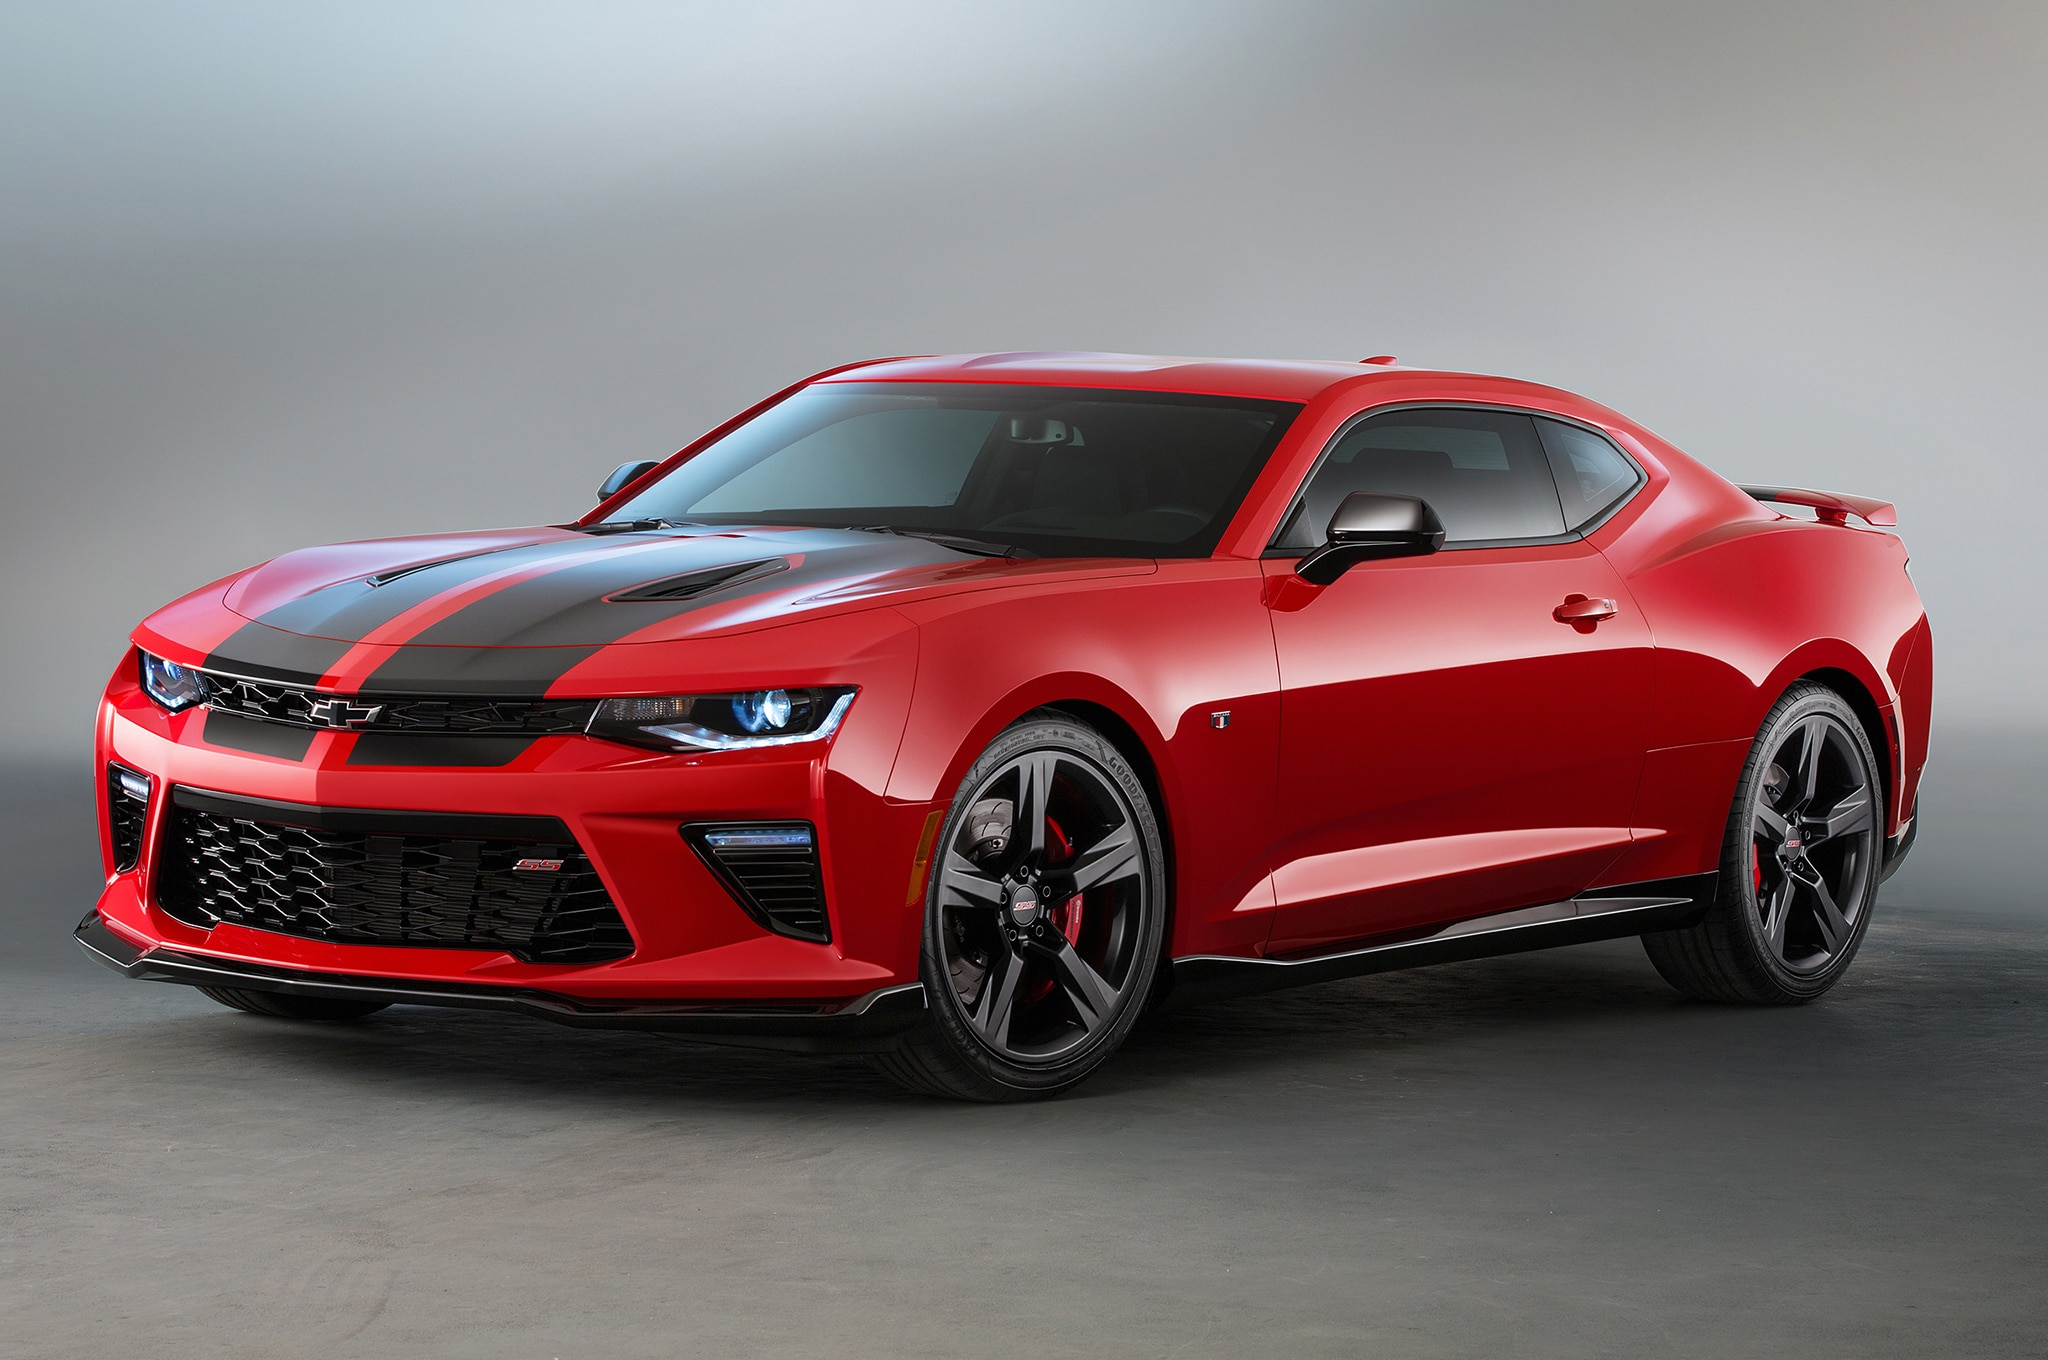 2016 Chevrolet Camaro SS Red, Black Accent Concepts Head ...